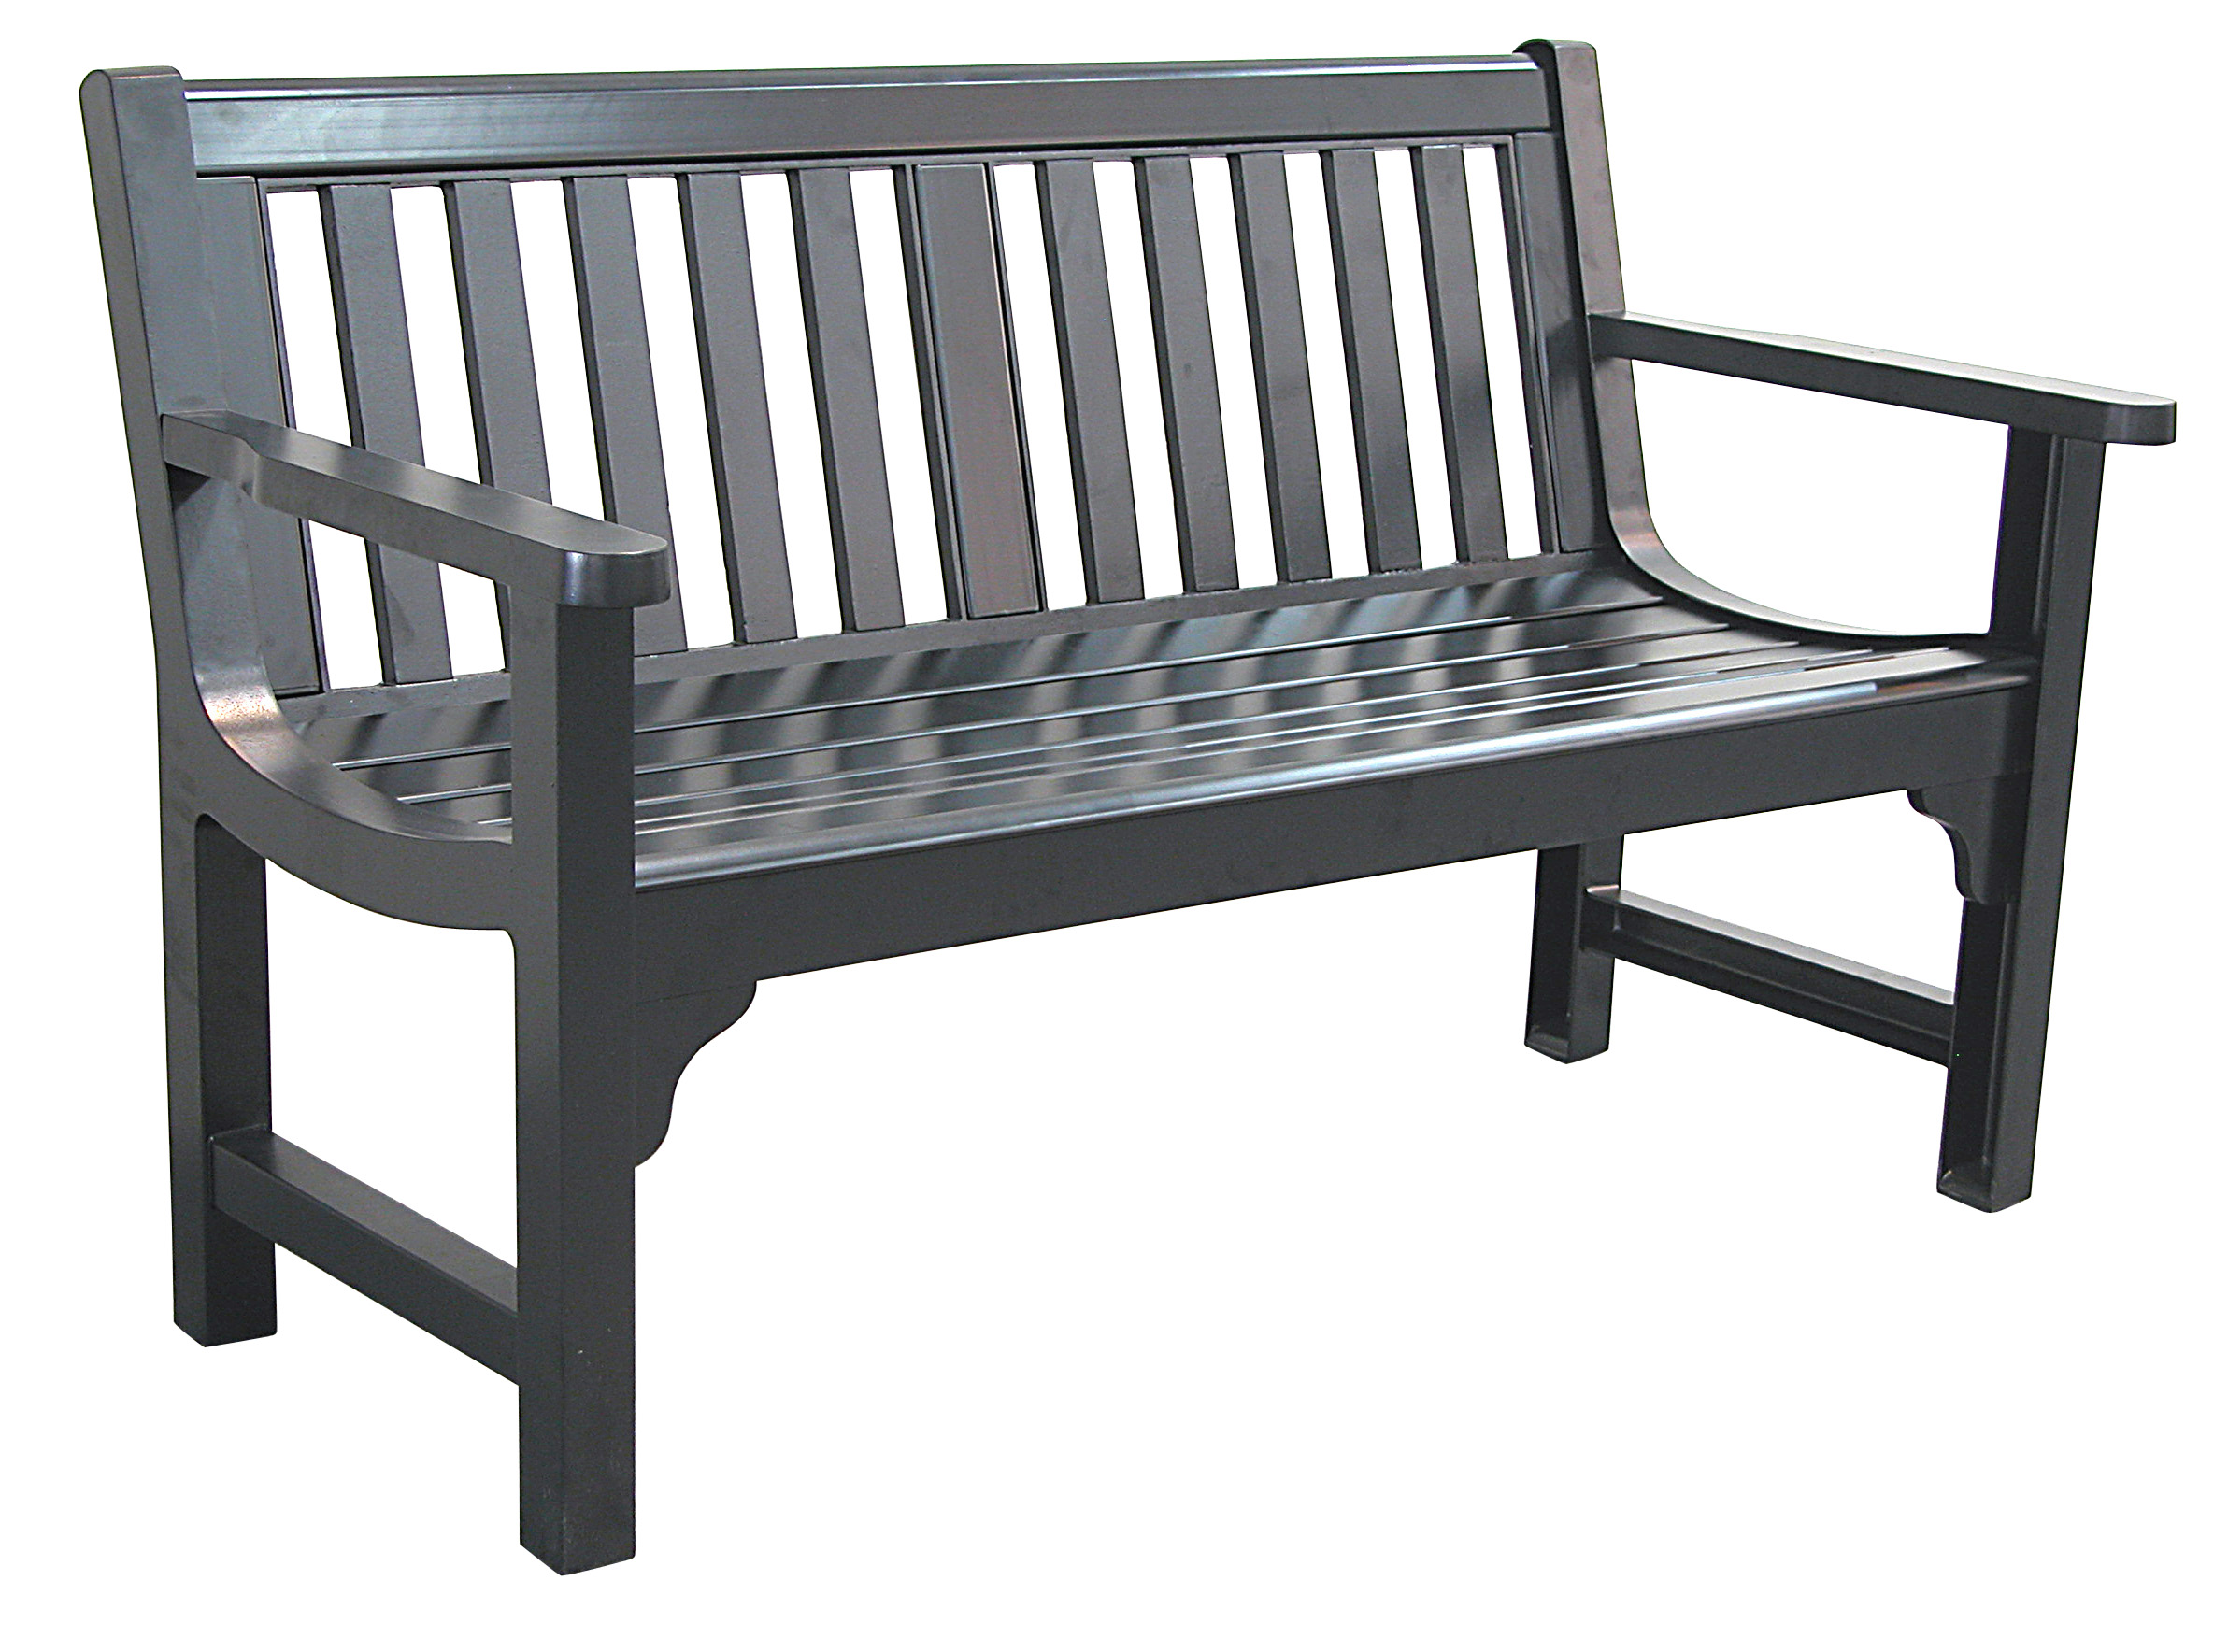 Patio furniture bench aluminum charleston Aluminum benches